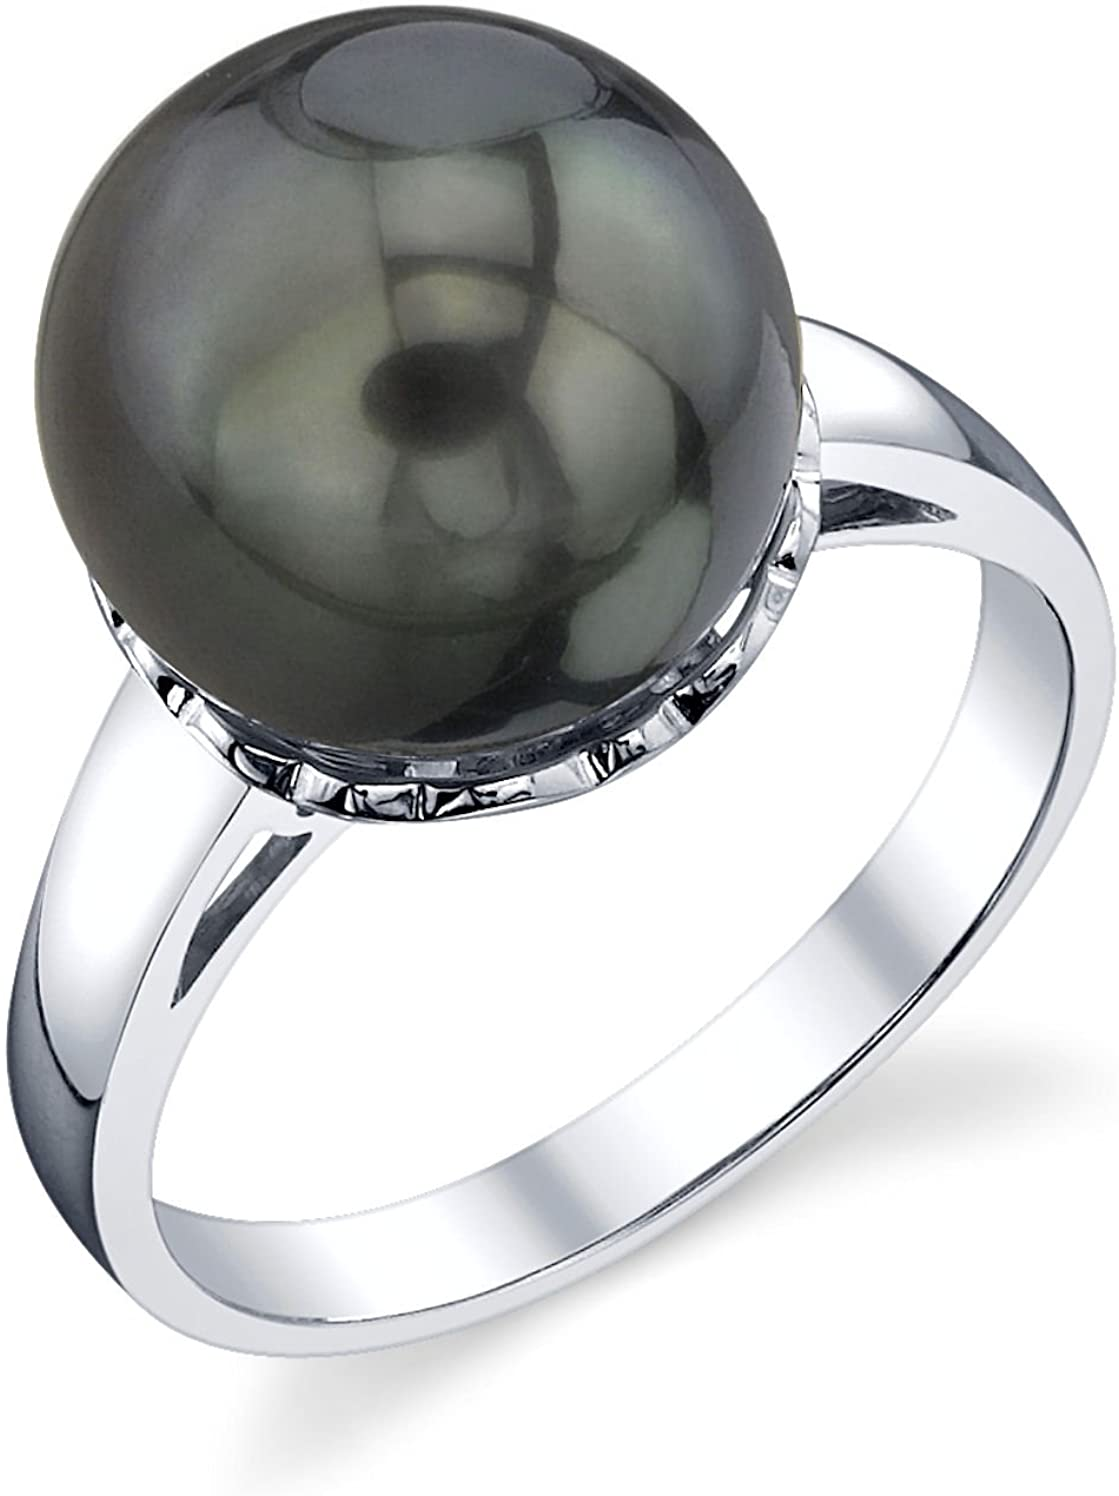 THE PEARL SOURCE 14K Gold 11-12mm Round Genuine Black Tahitian South Sea Cultured Pearl Laurel Ring for Women